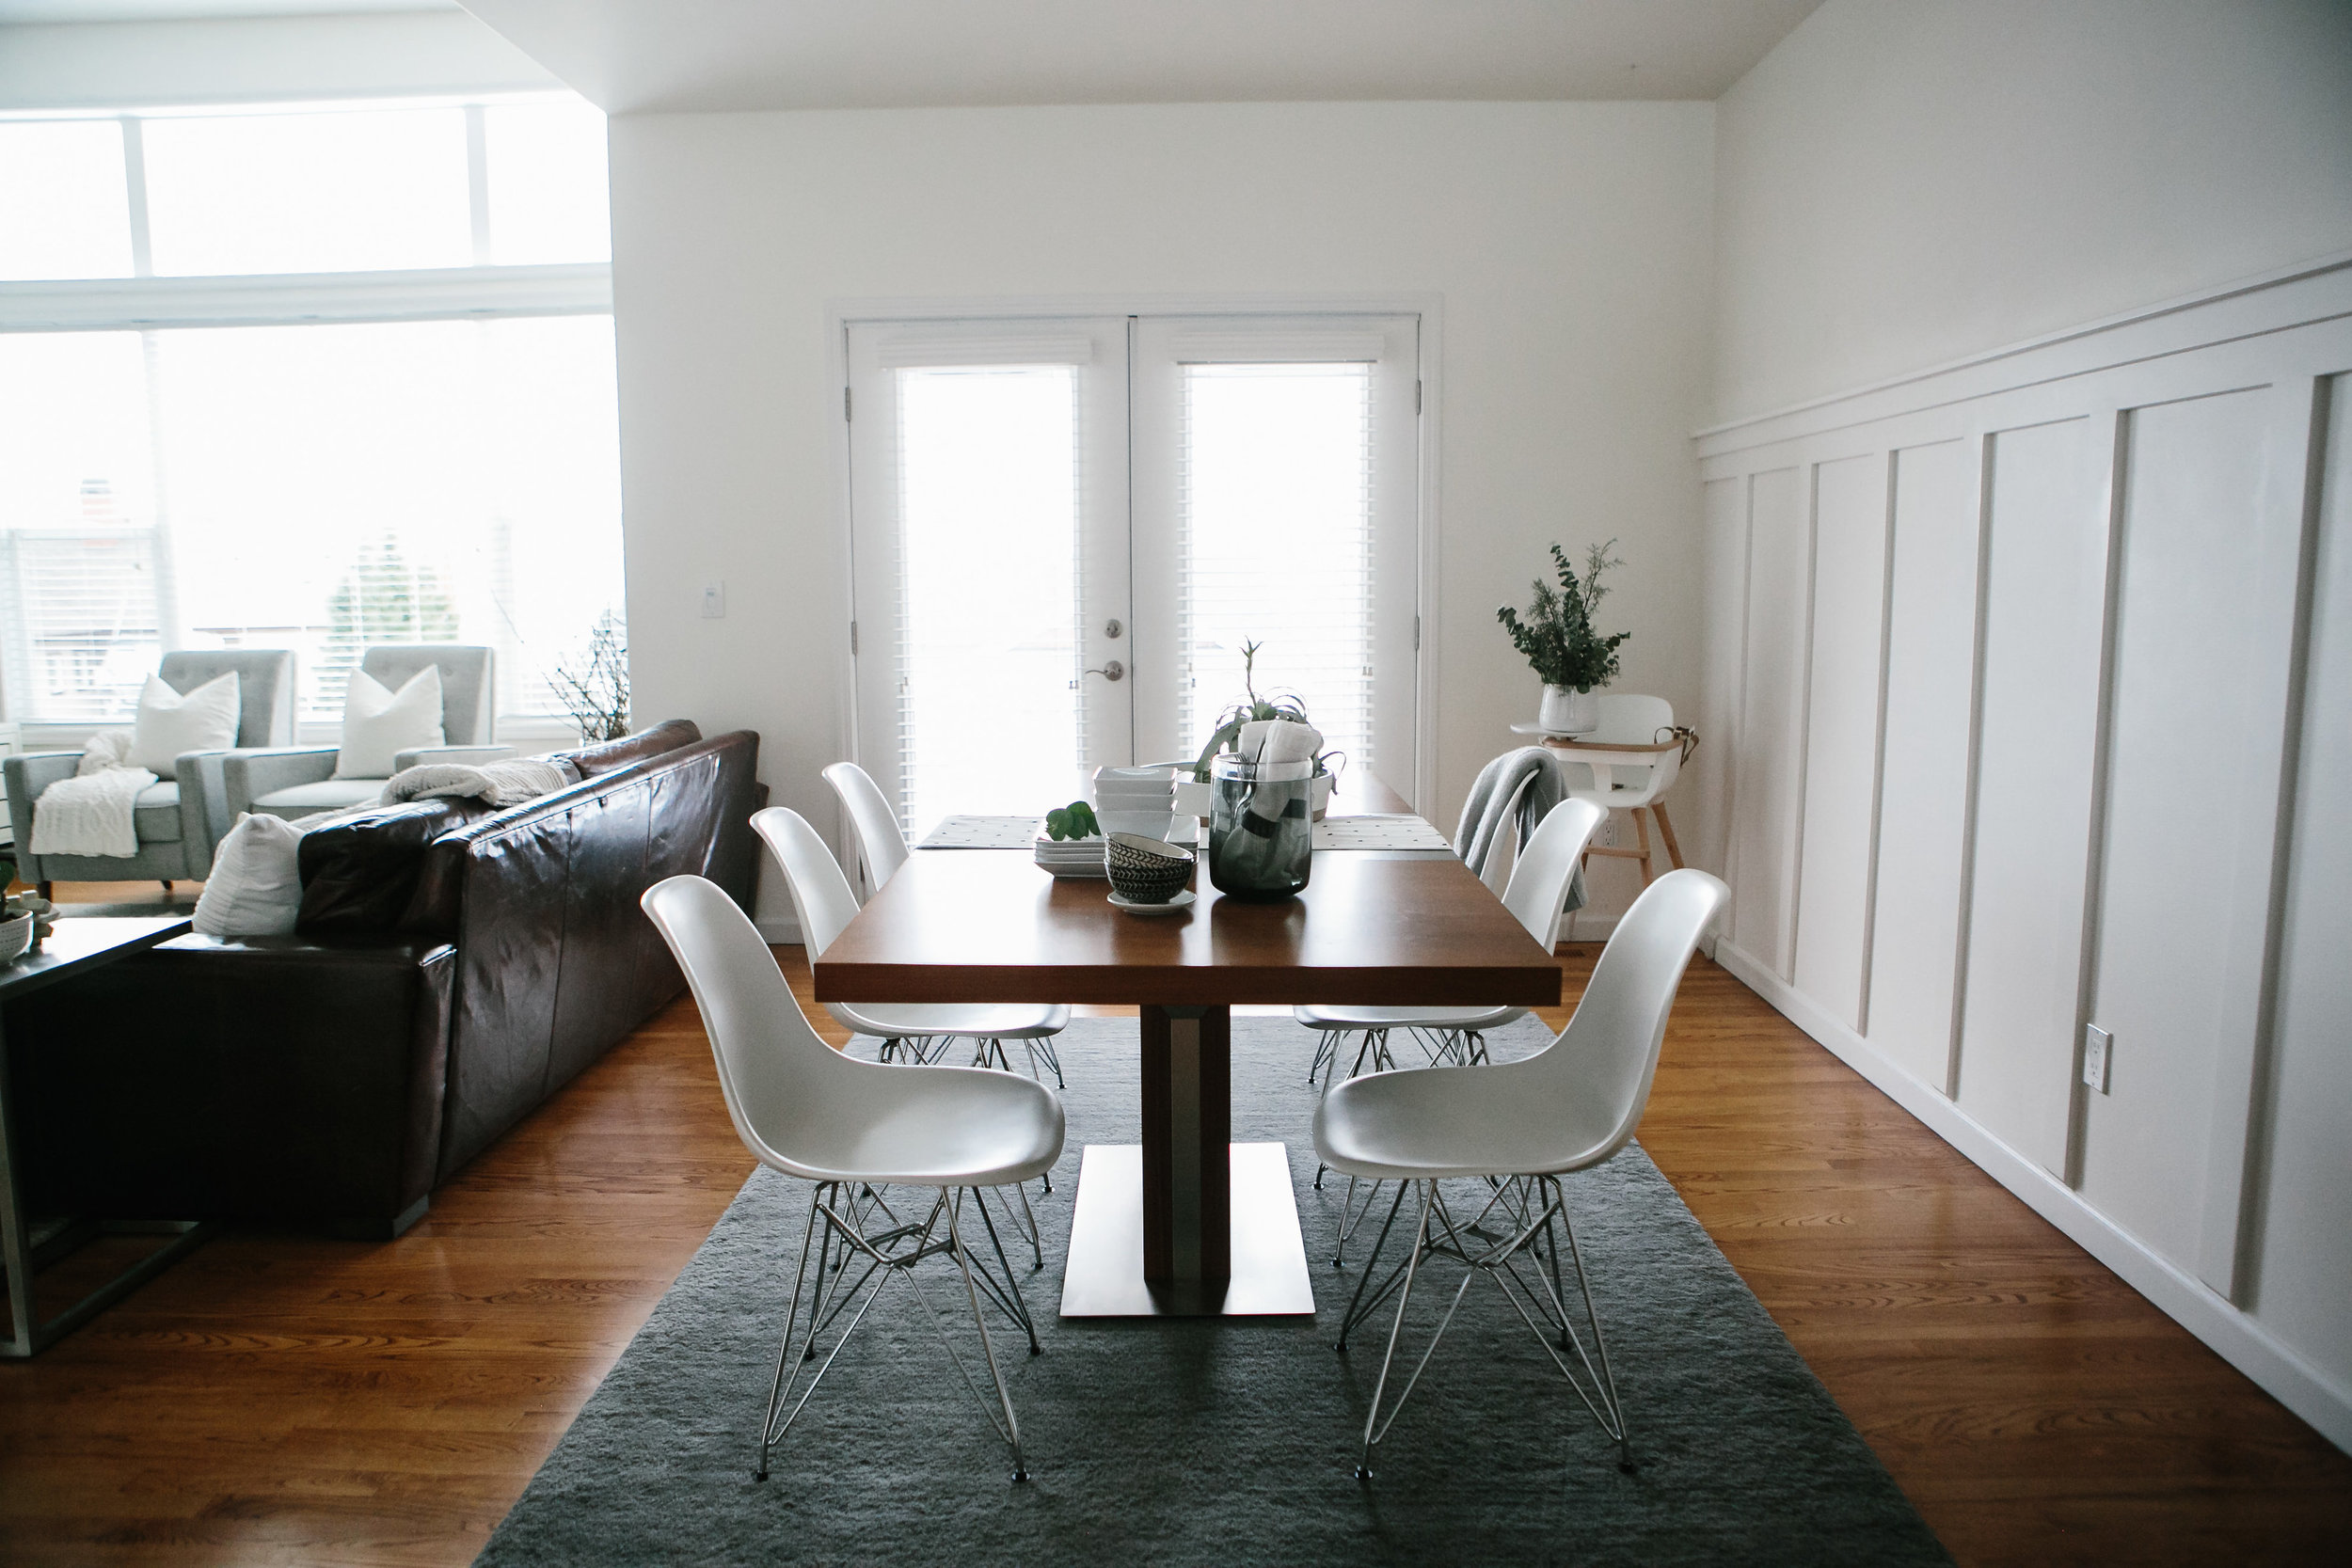 A light and bright dining room with table and chairs.